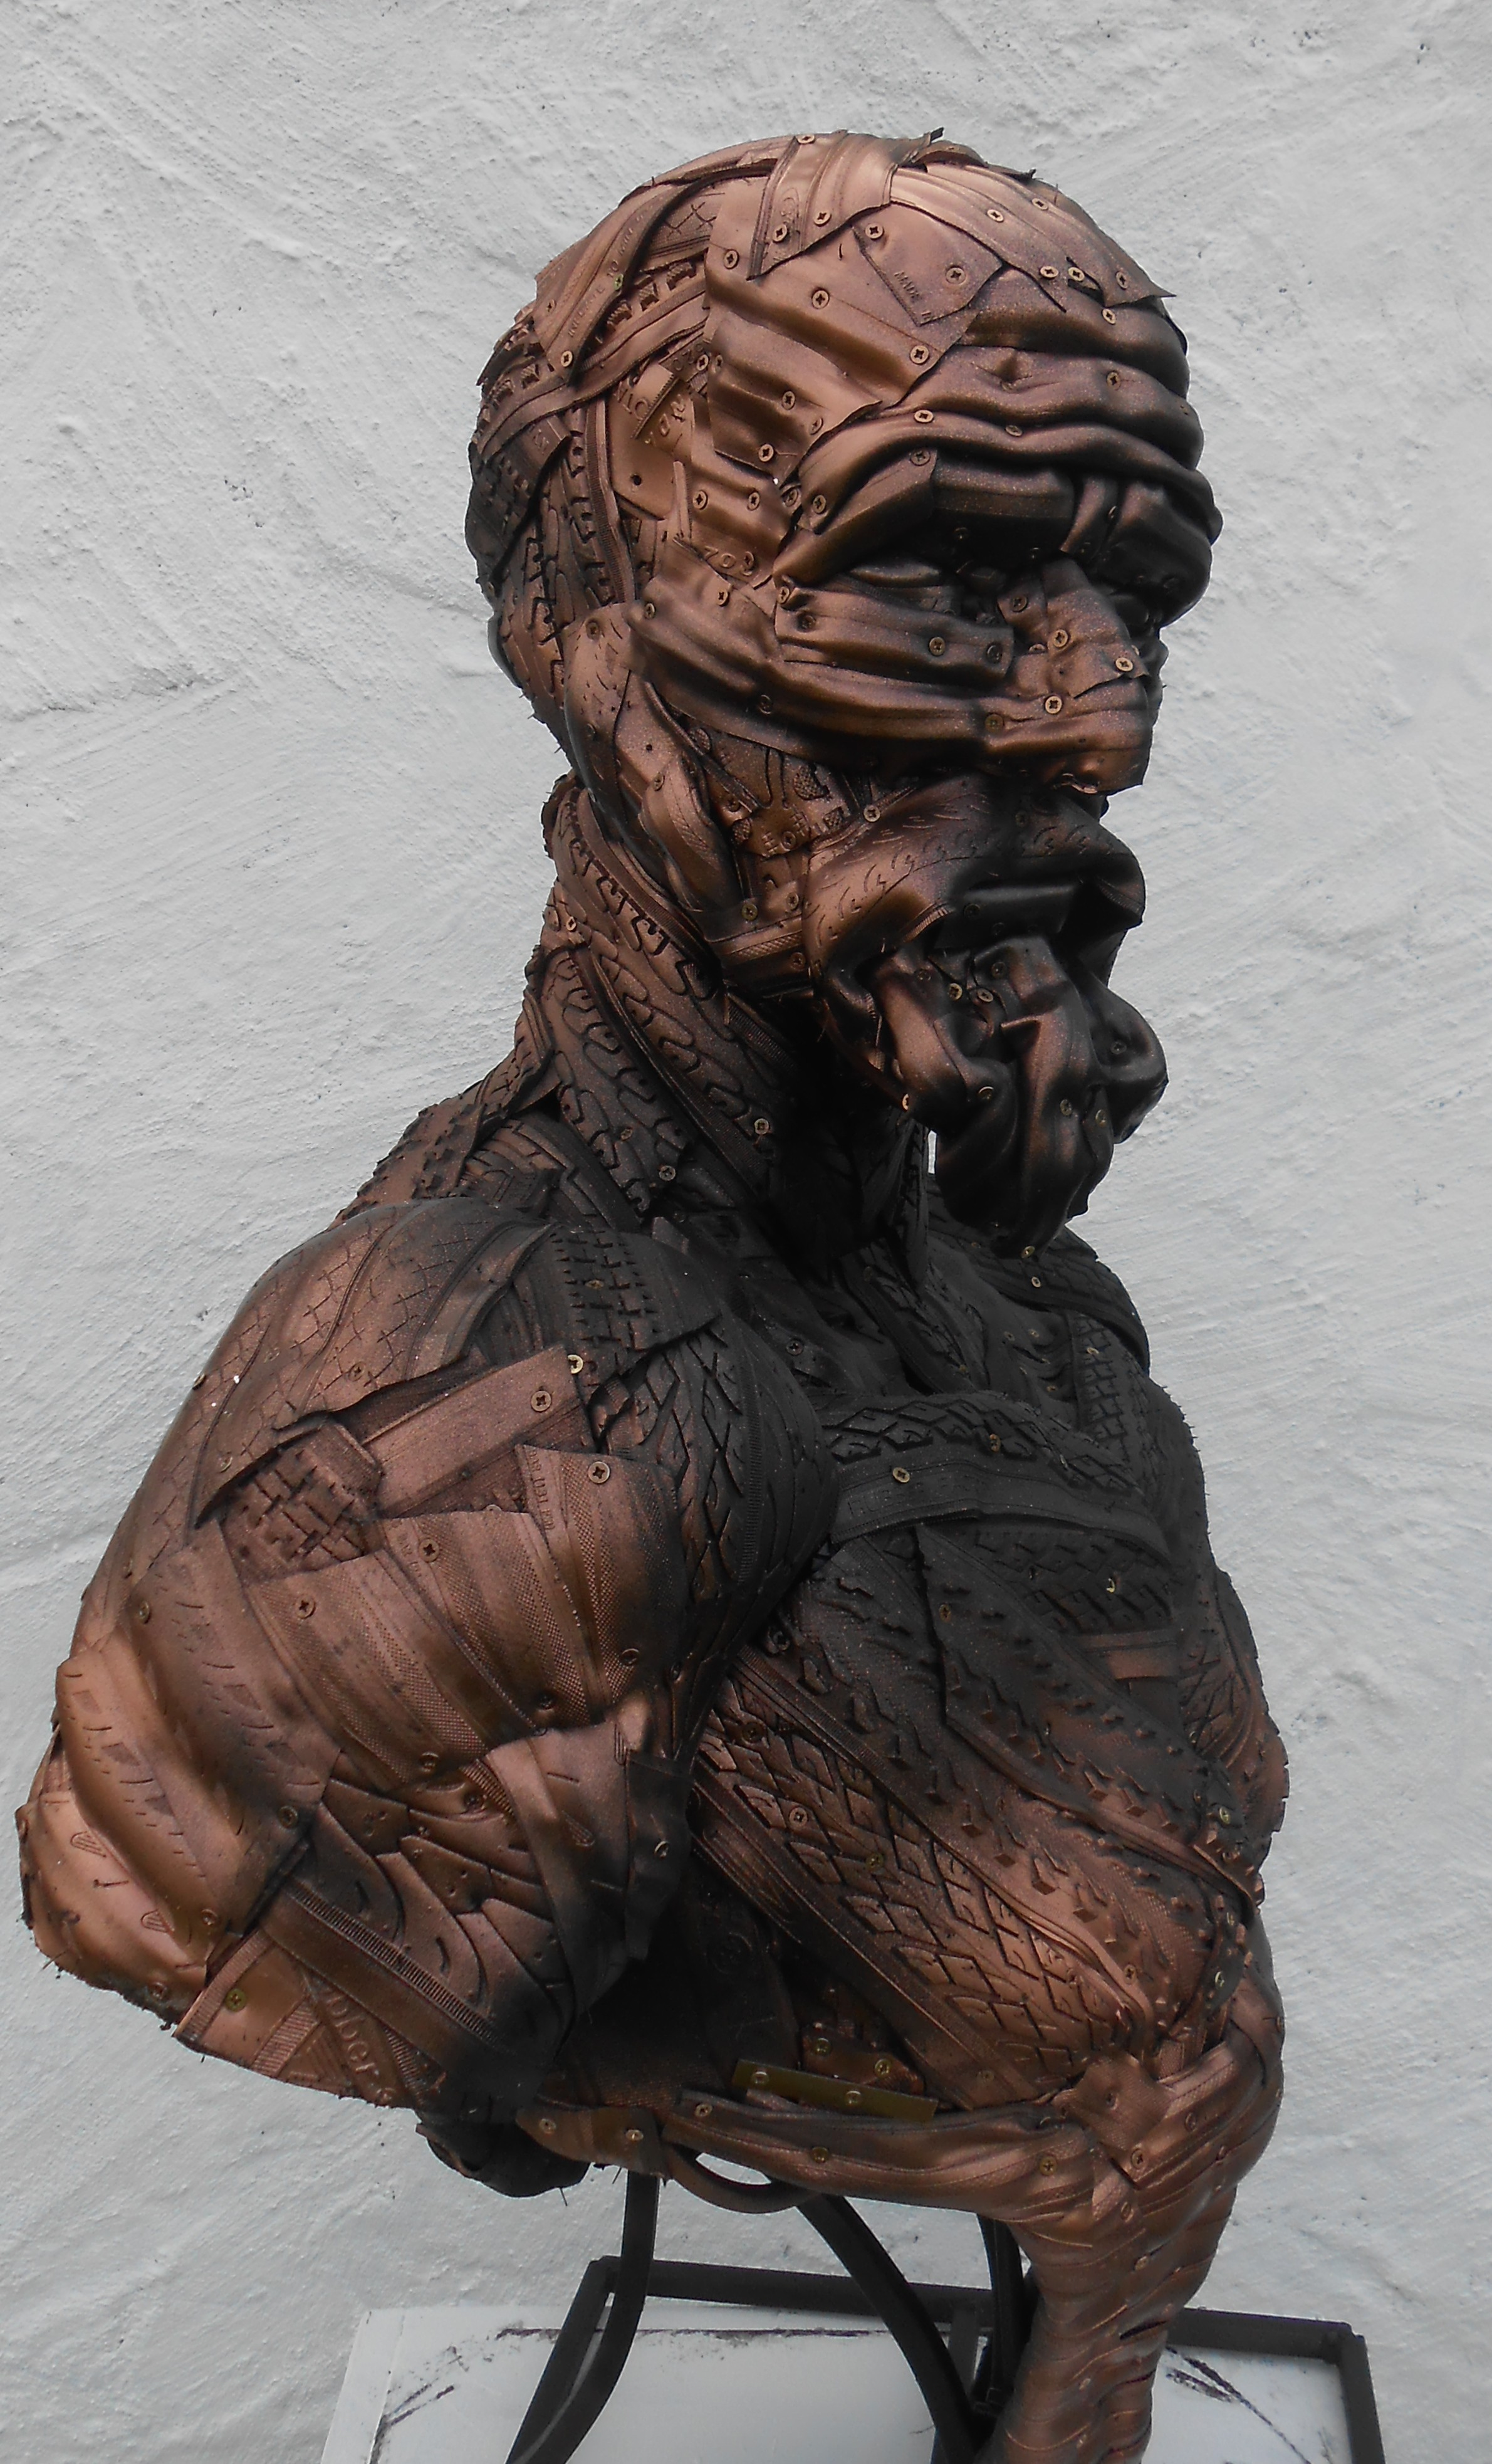 'Diogenes' is Davis' first human form created with recycled tyres